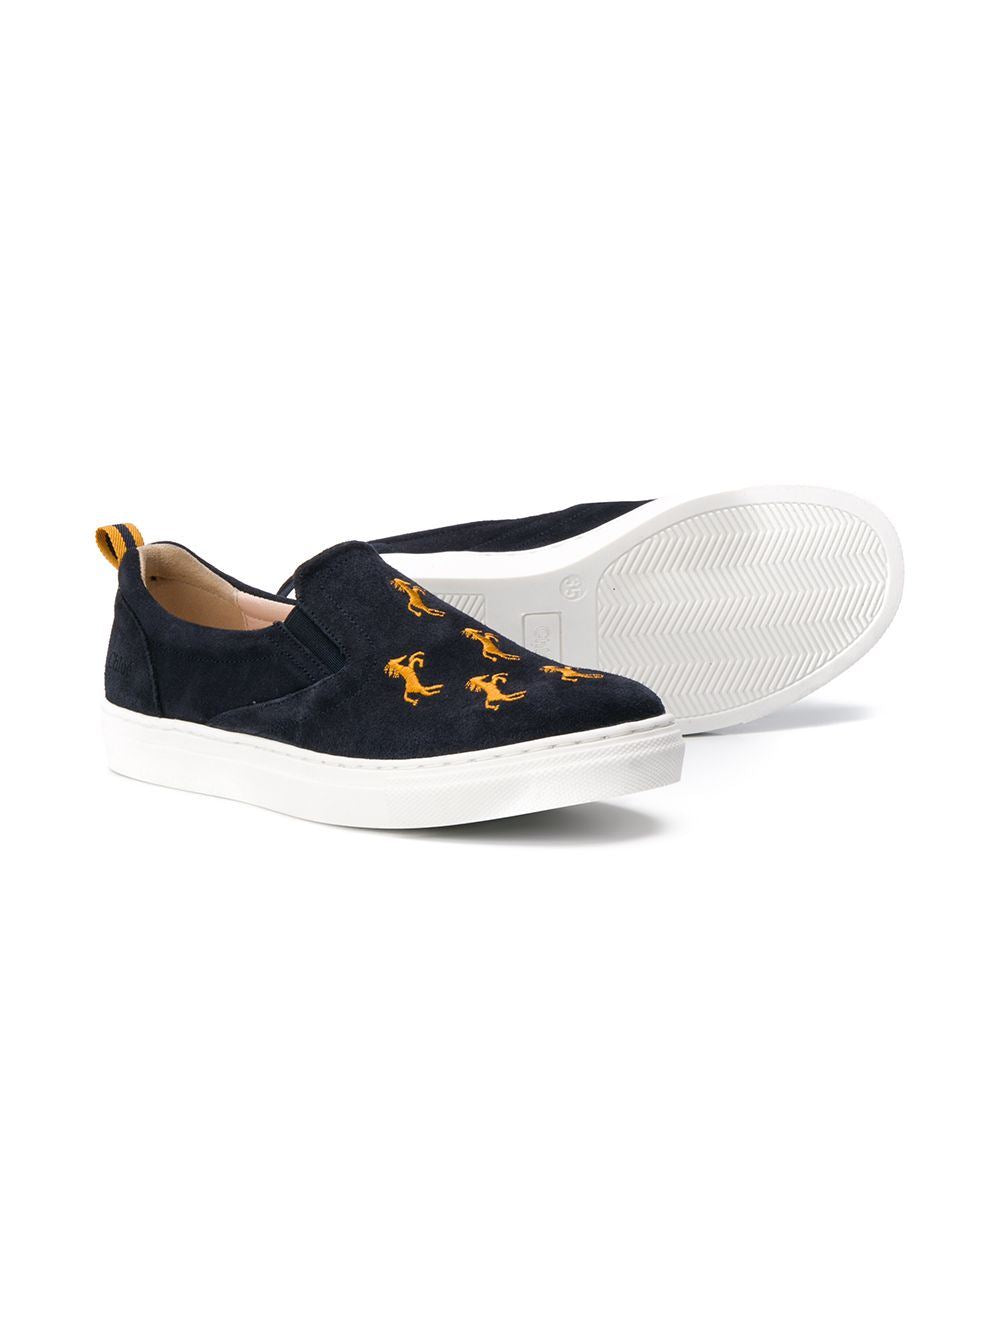 CHLOÉ KIDS embroidered sneakers Navy - Maison De Fashion